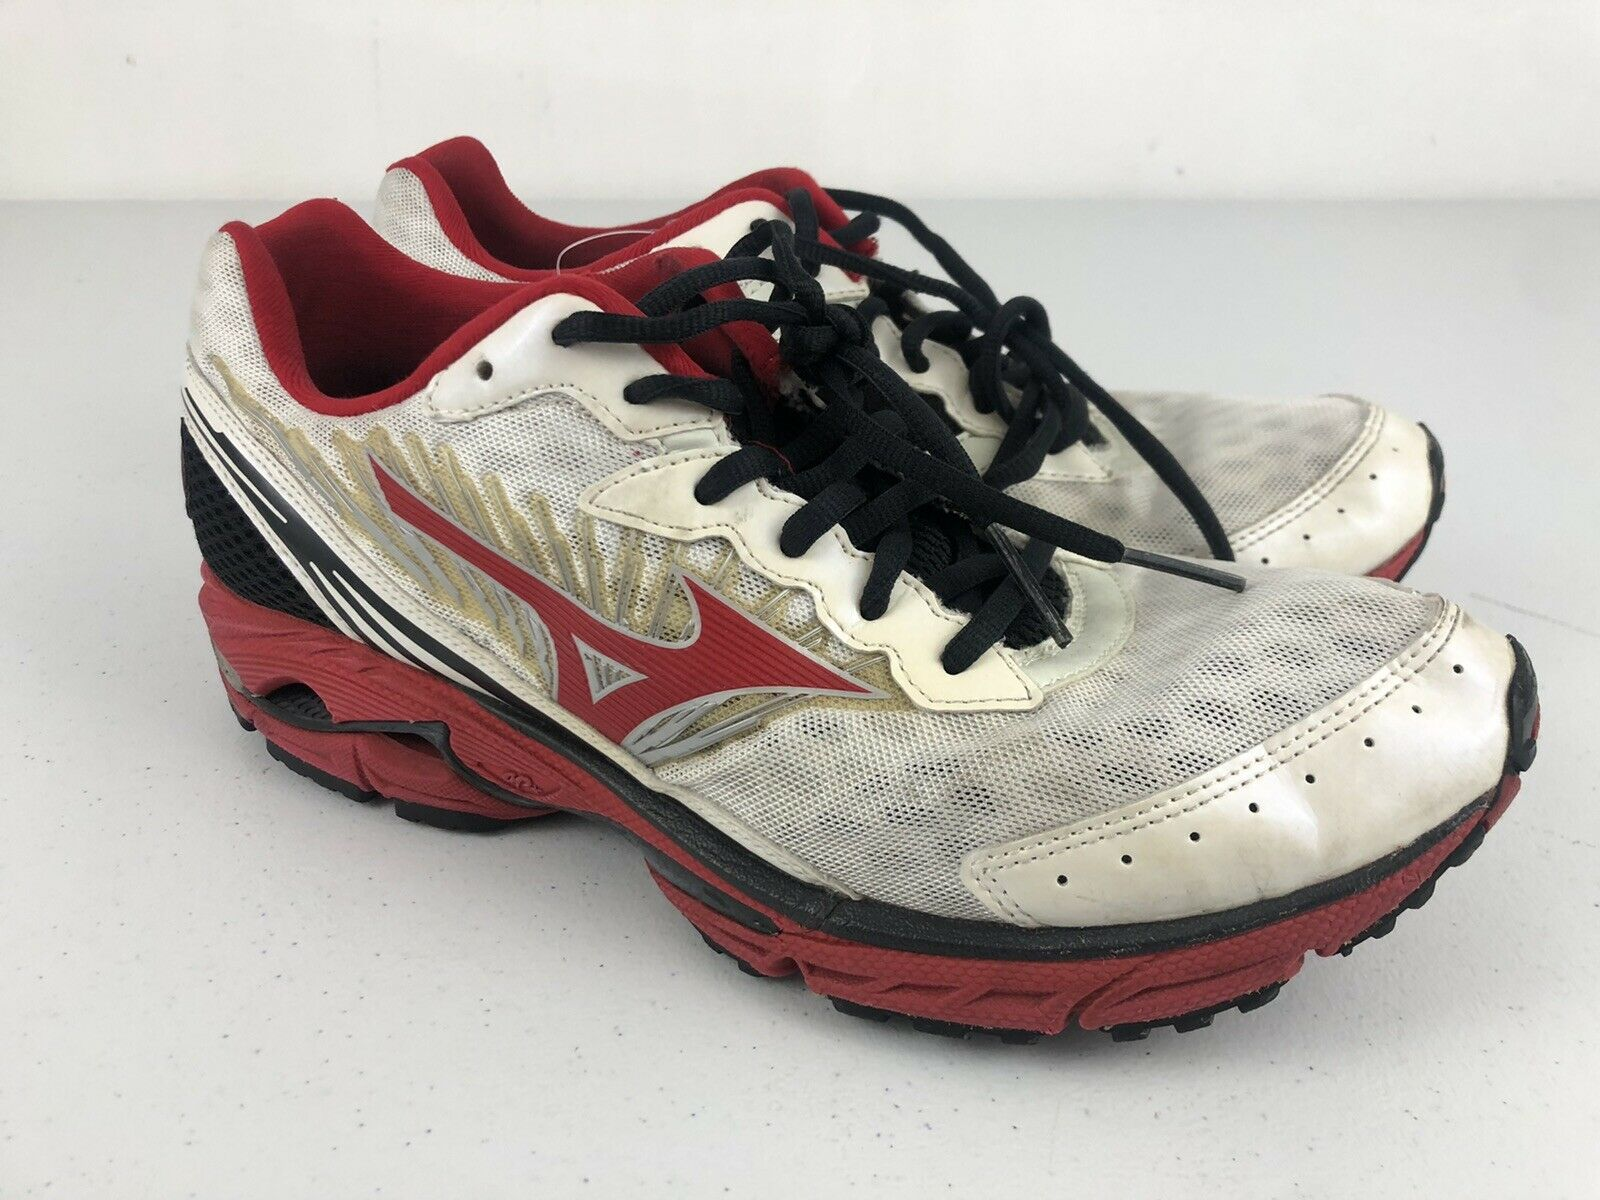 Mizuno Wave Rider 16 Men's Size 9 Athletic Running Shoes Sneakers White/Red